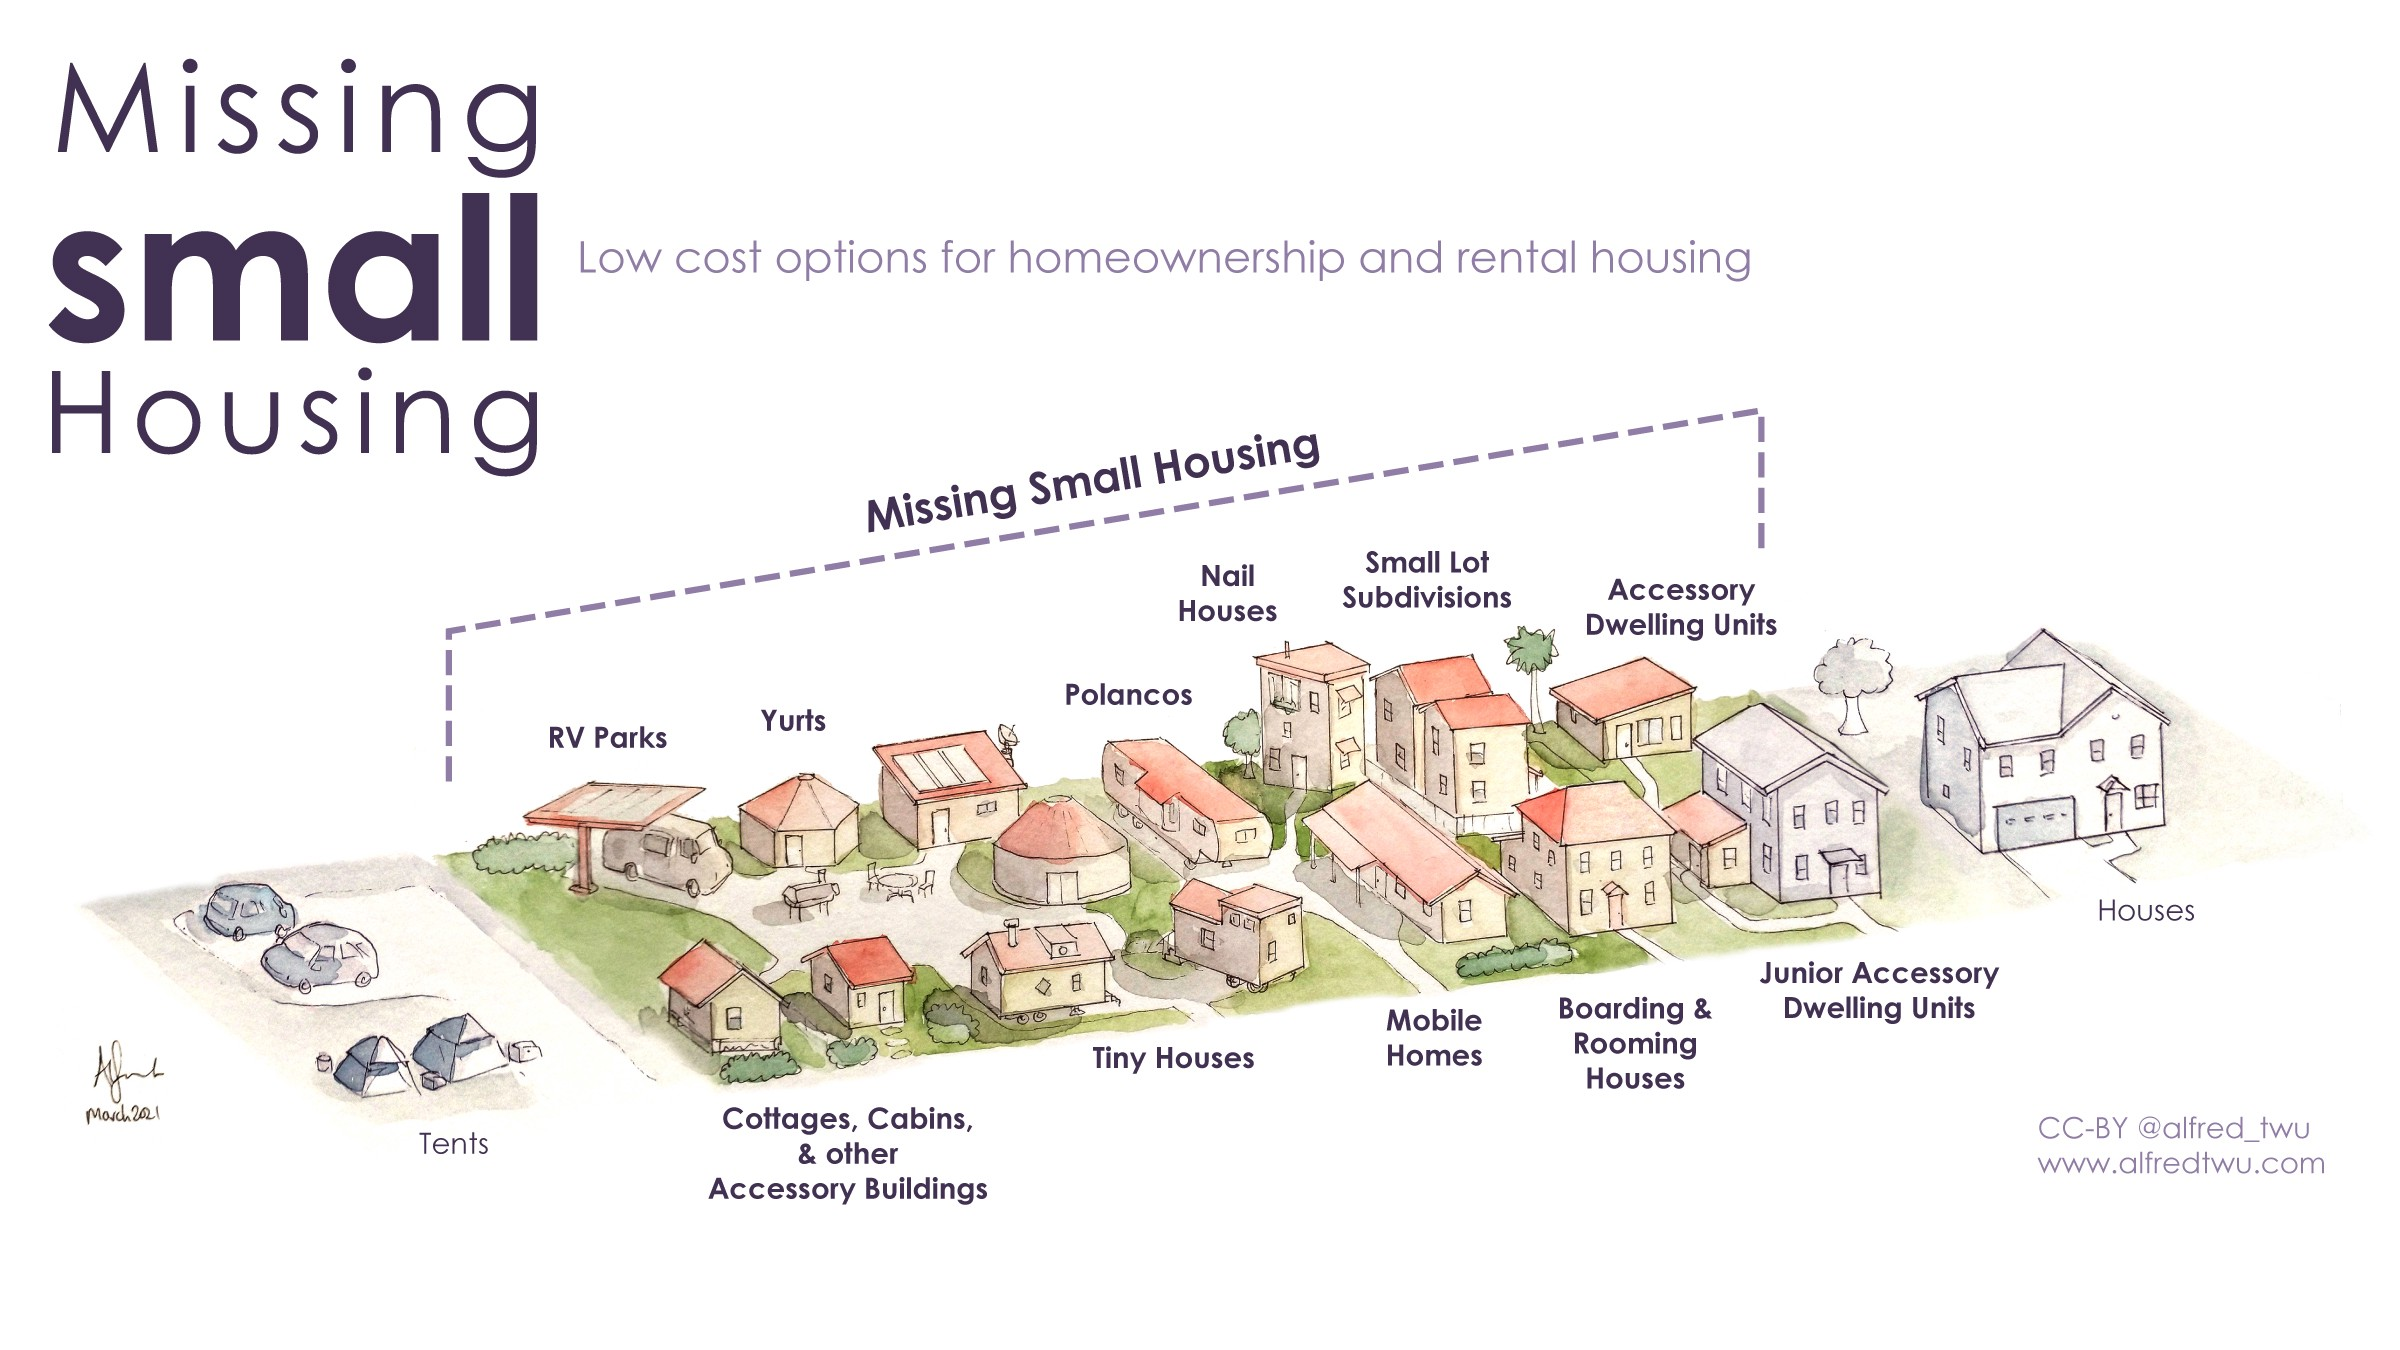 Missing small housing: low cost options for homeownership and rental housing. A picture if buildings such as RV parks, yurts, cottages, tiny houses, mobile homes, rooming houses, nail houses, small lot subdivisions, and accessory dwelling units